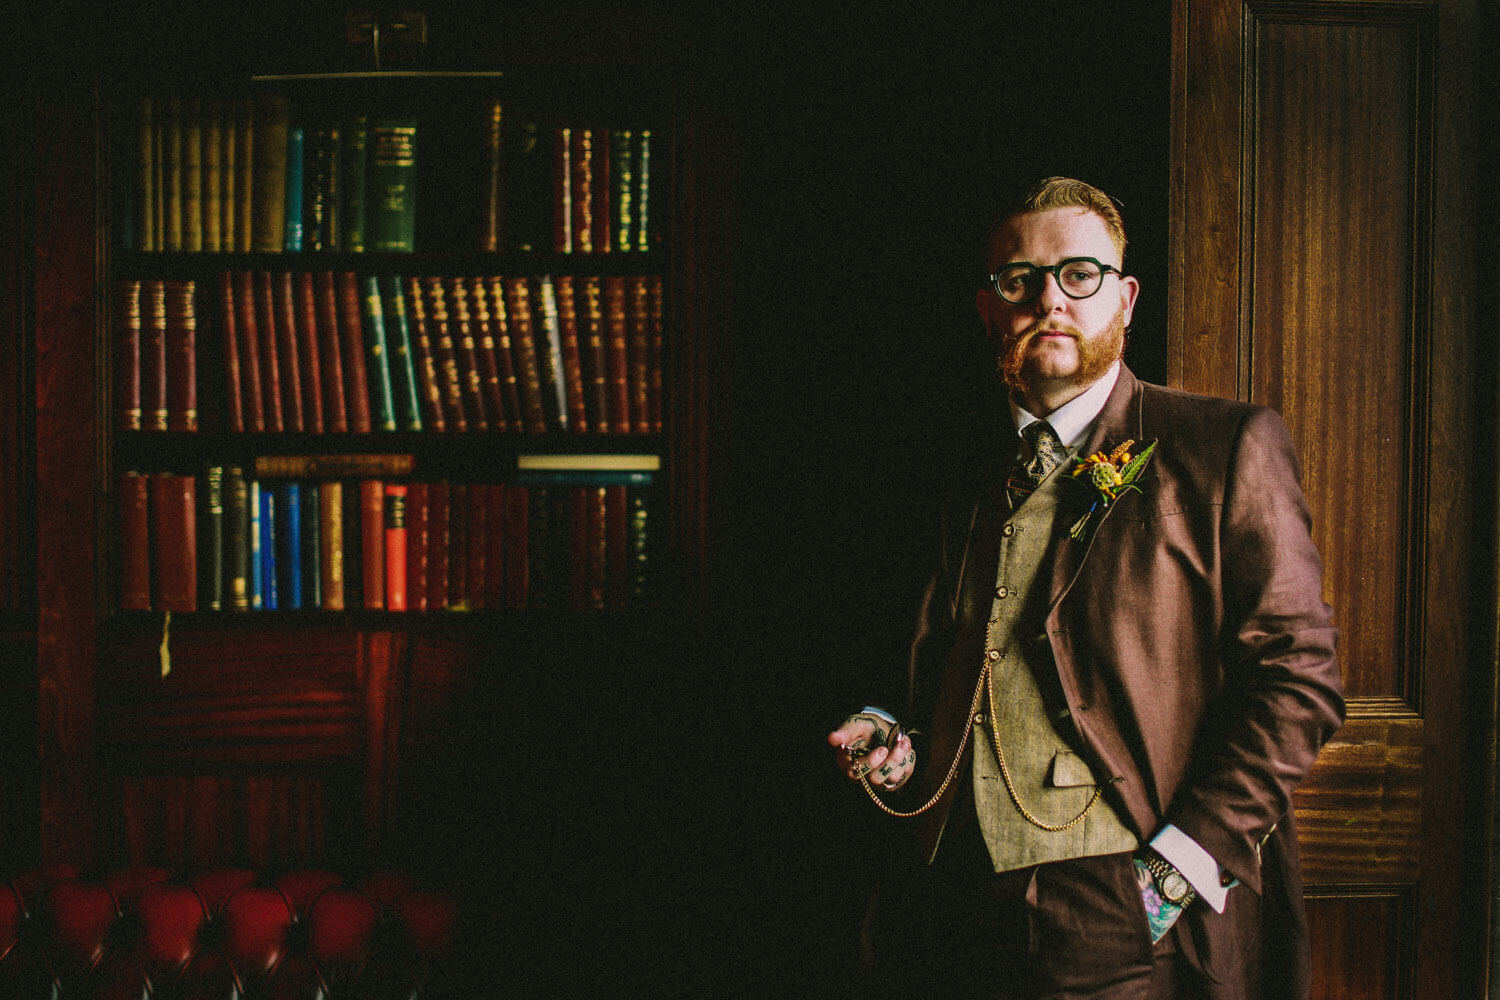 Portrait of vintage looking groom with glasses and pocket watch